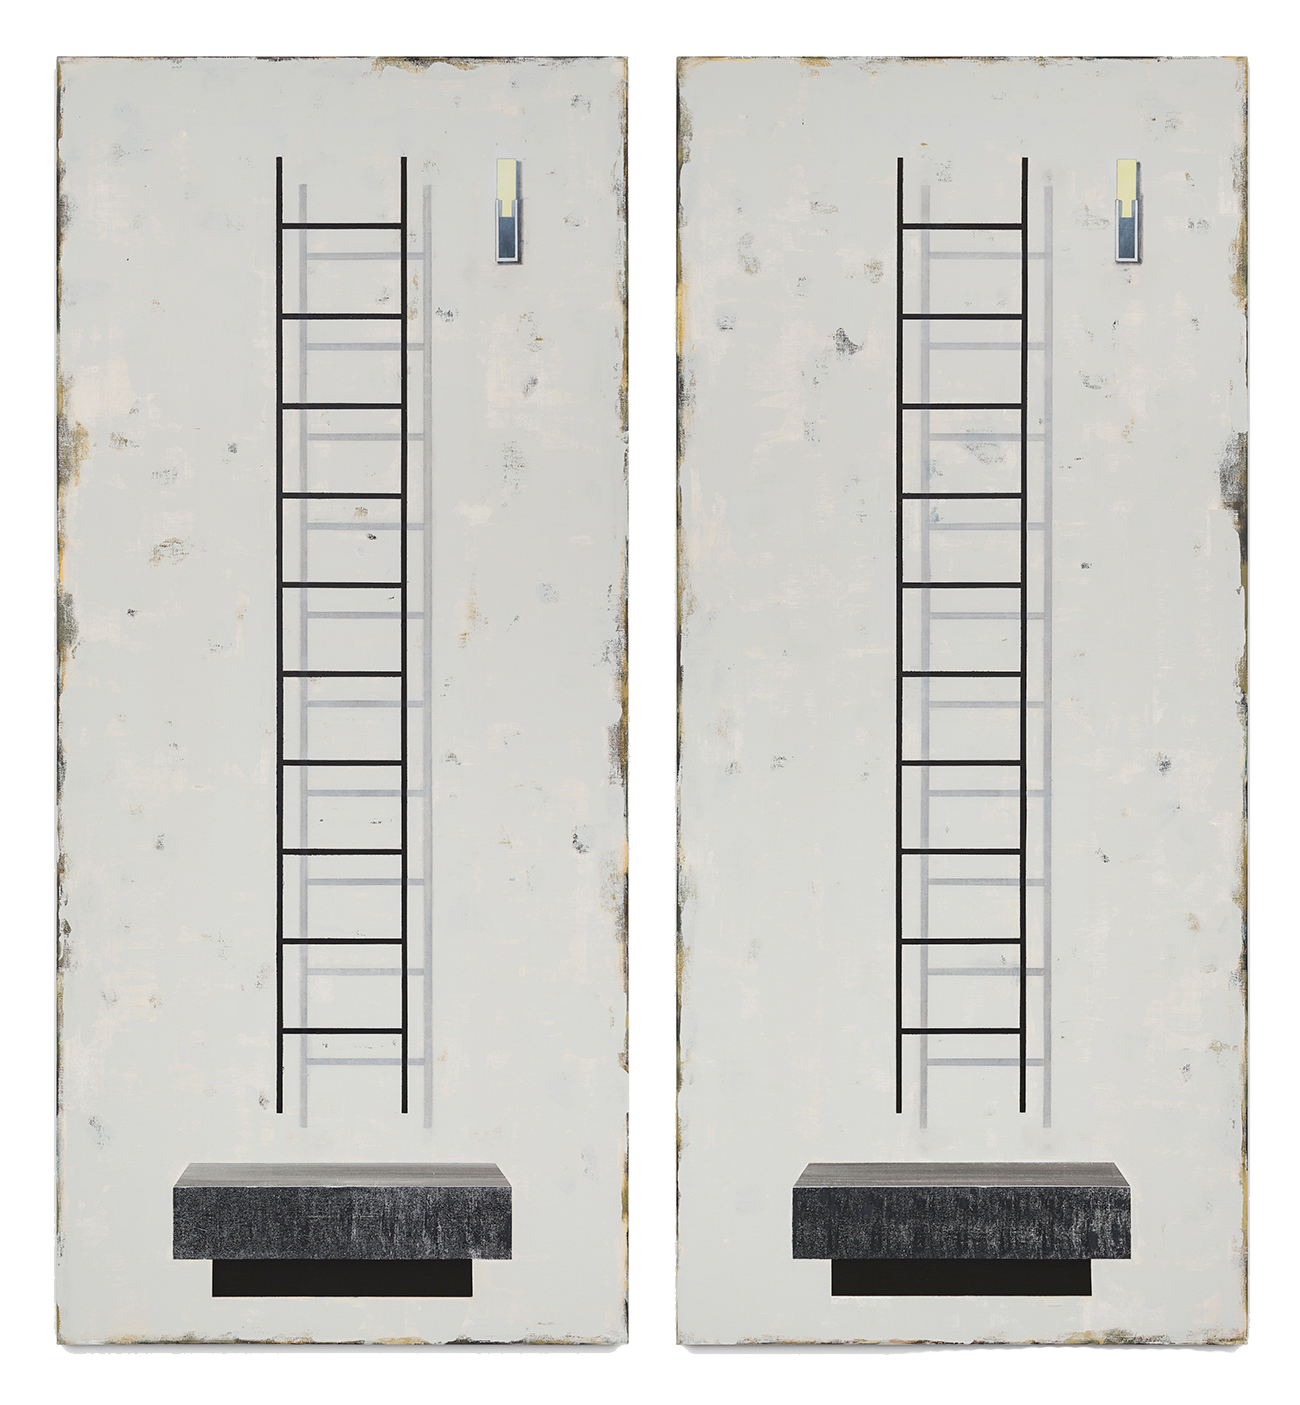 Squint 52 (ladders)